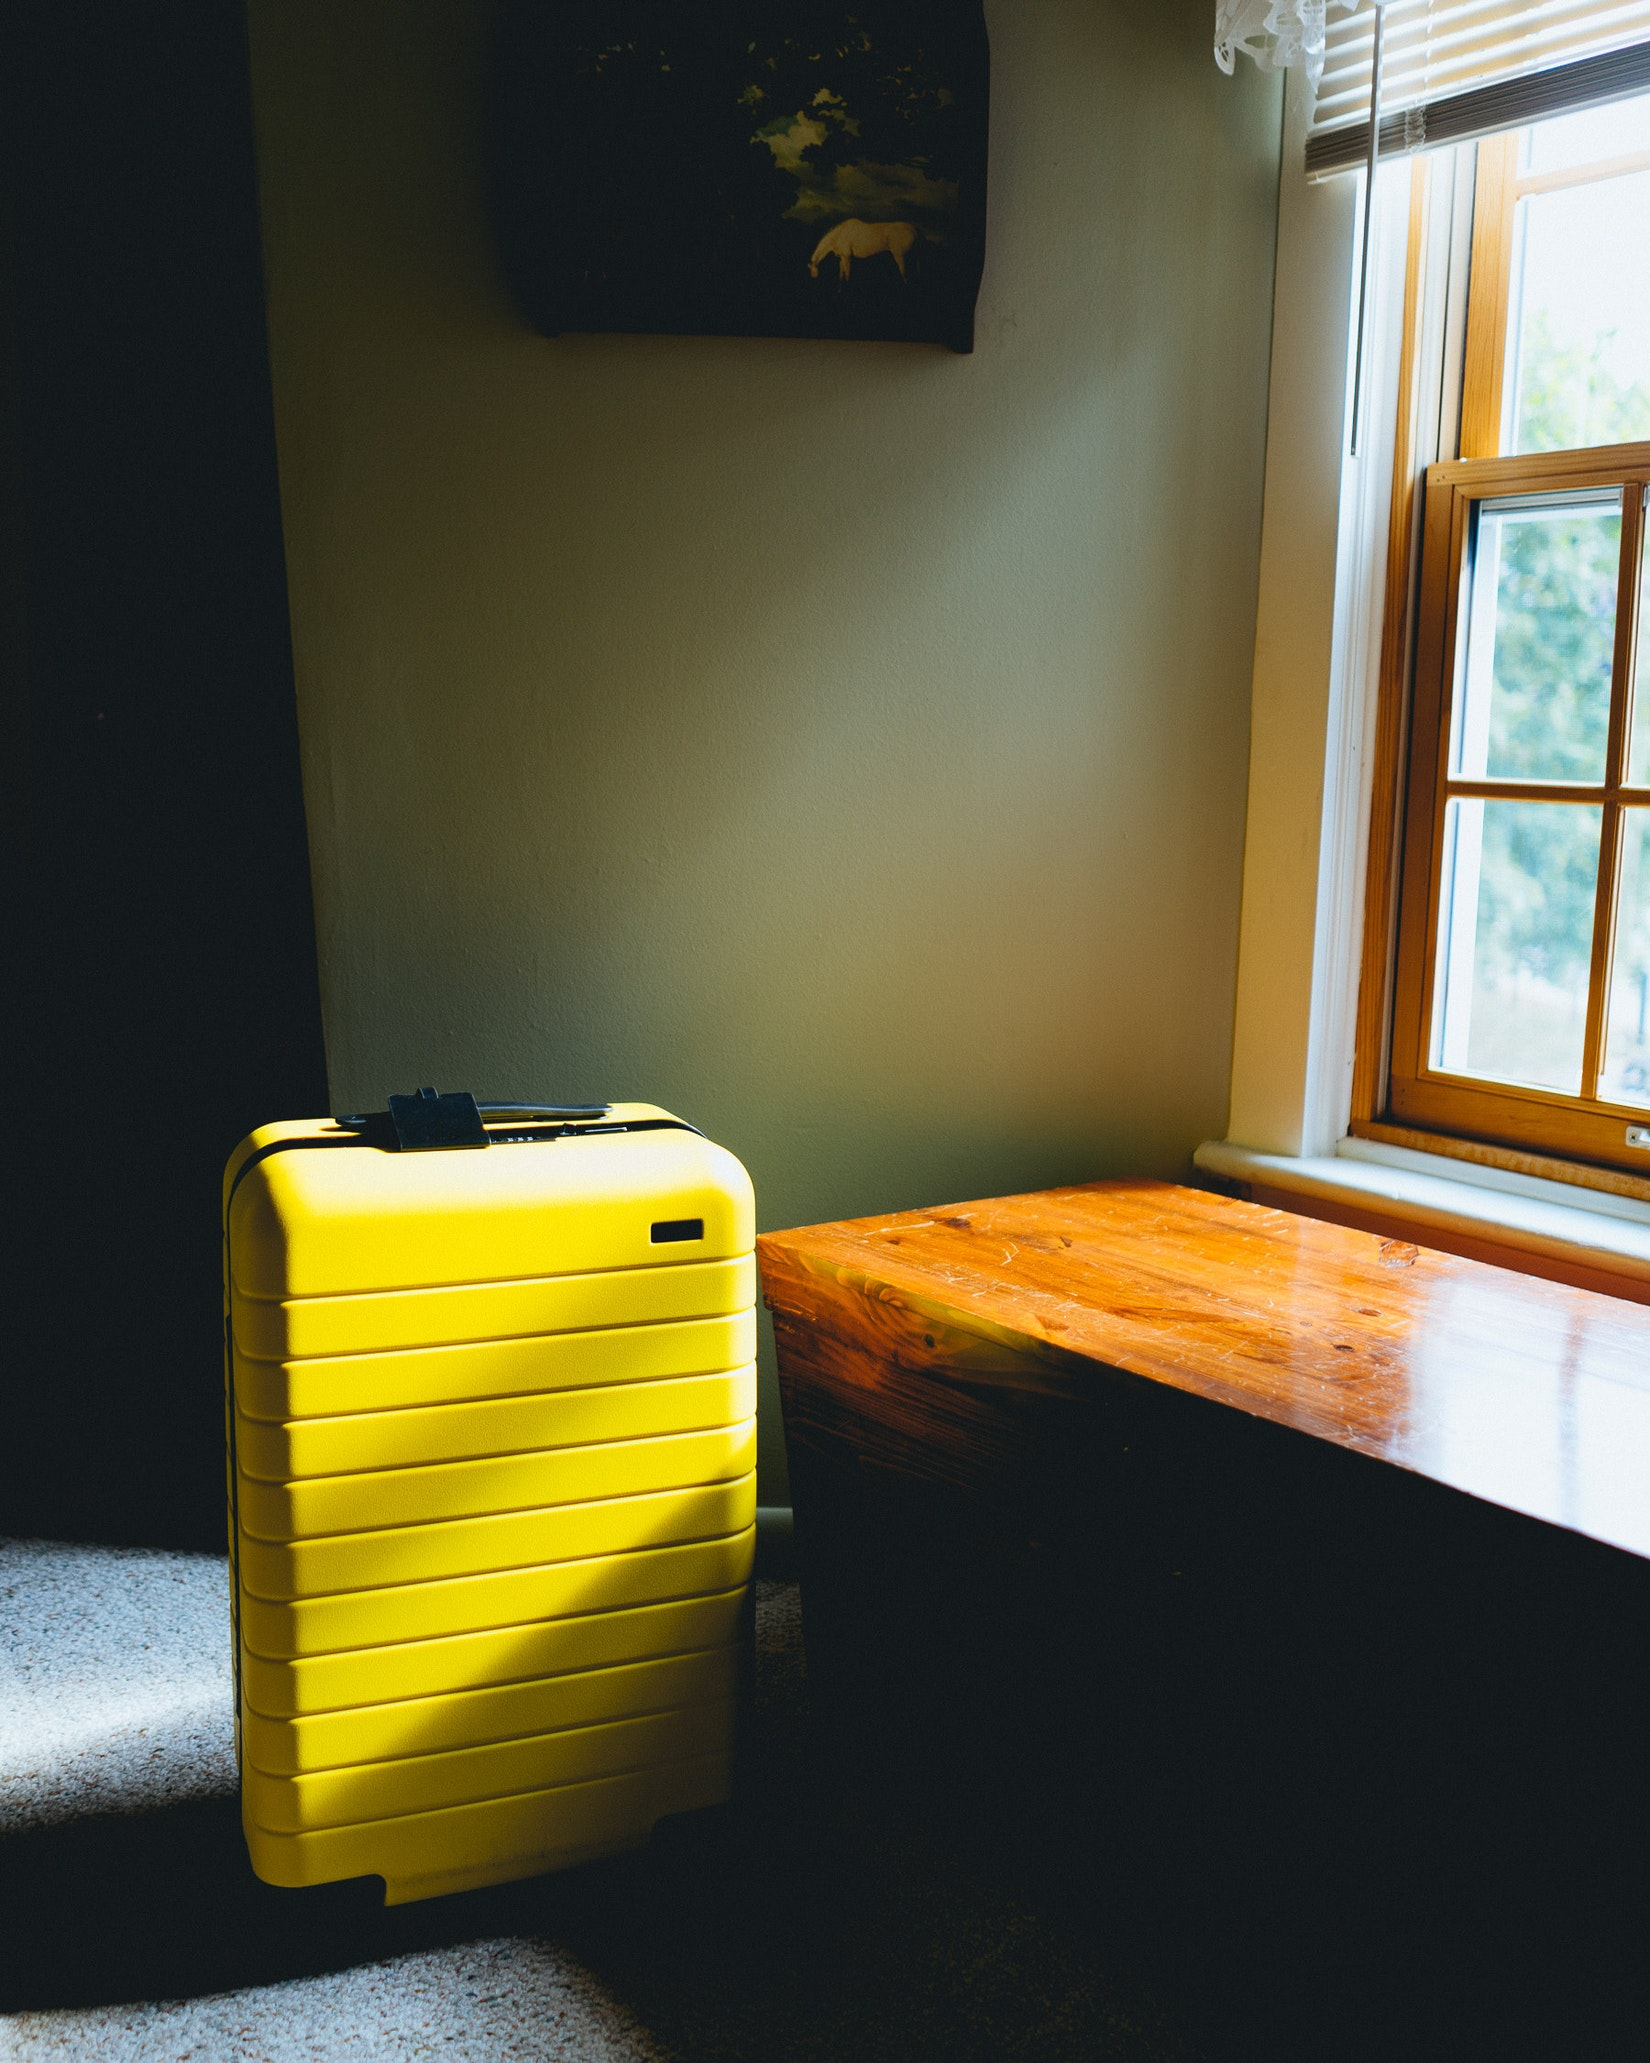 Yellow away suitcase in a room with sunlight